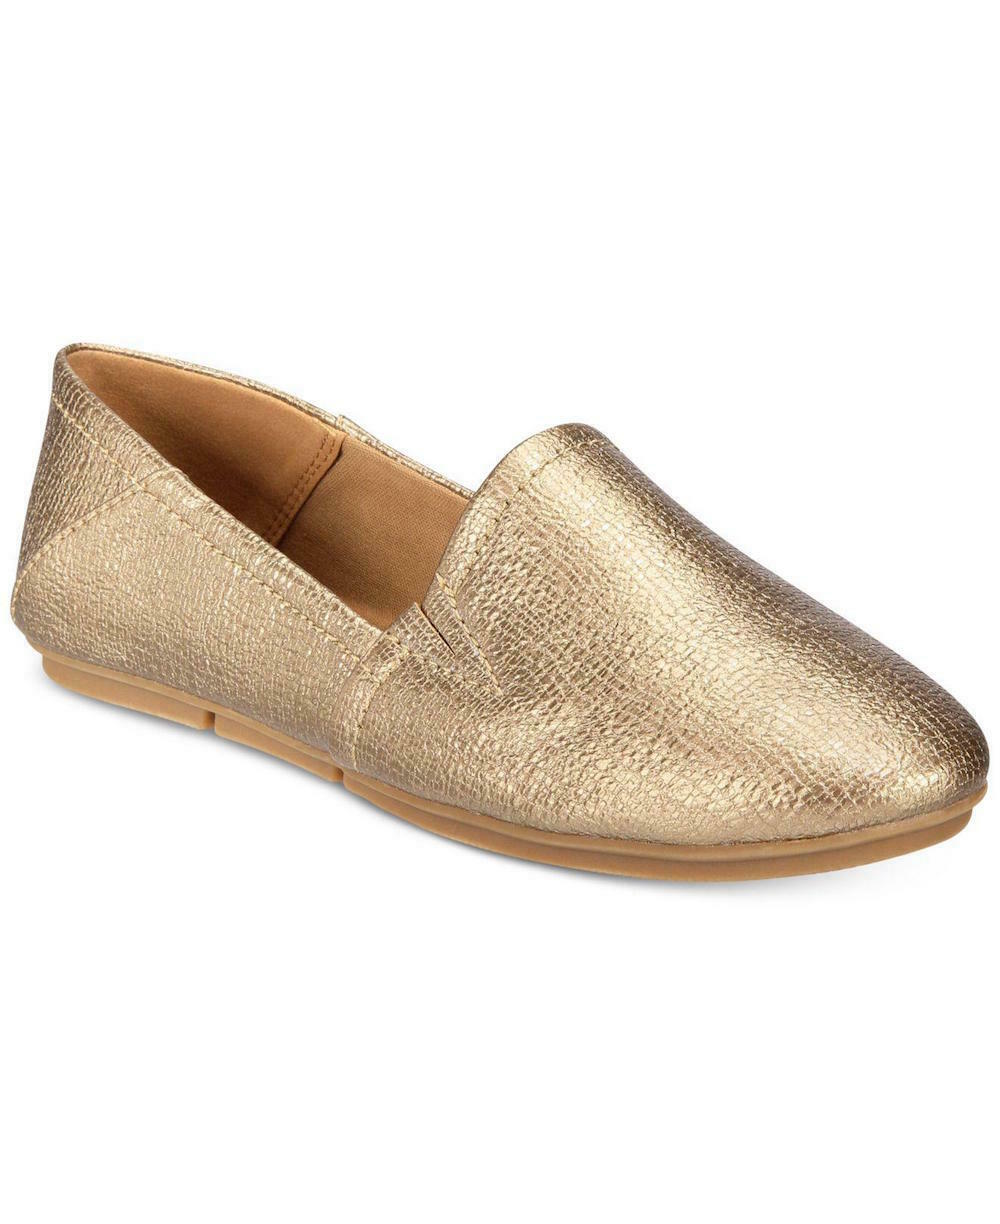 Style & Co. Womens Nixine Closed Toe Loafers, Gold, Size 5.0 US / 3 UK